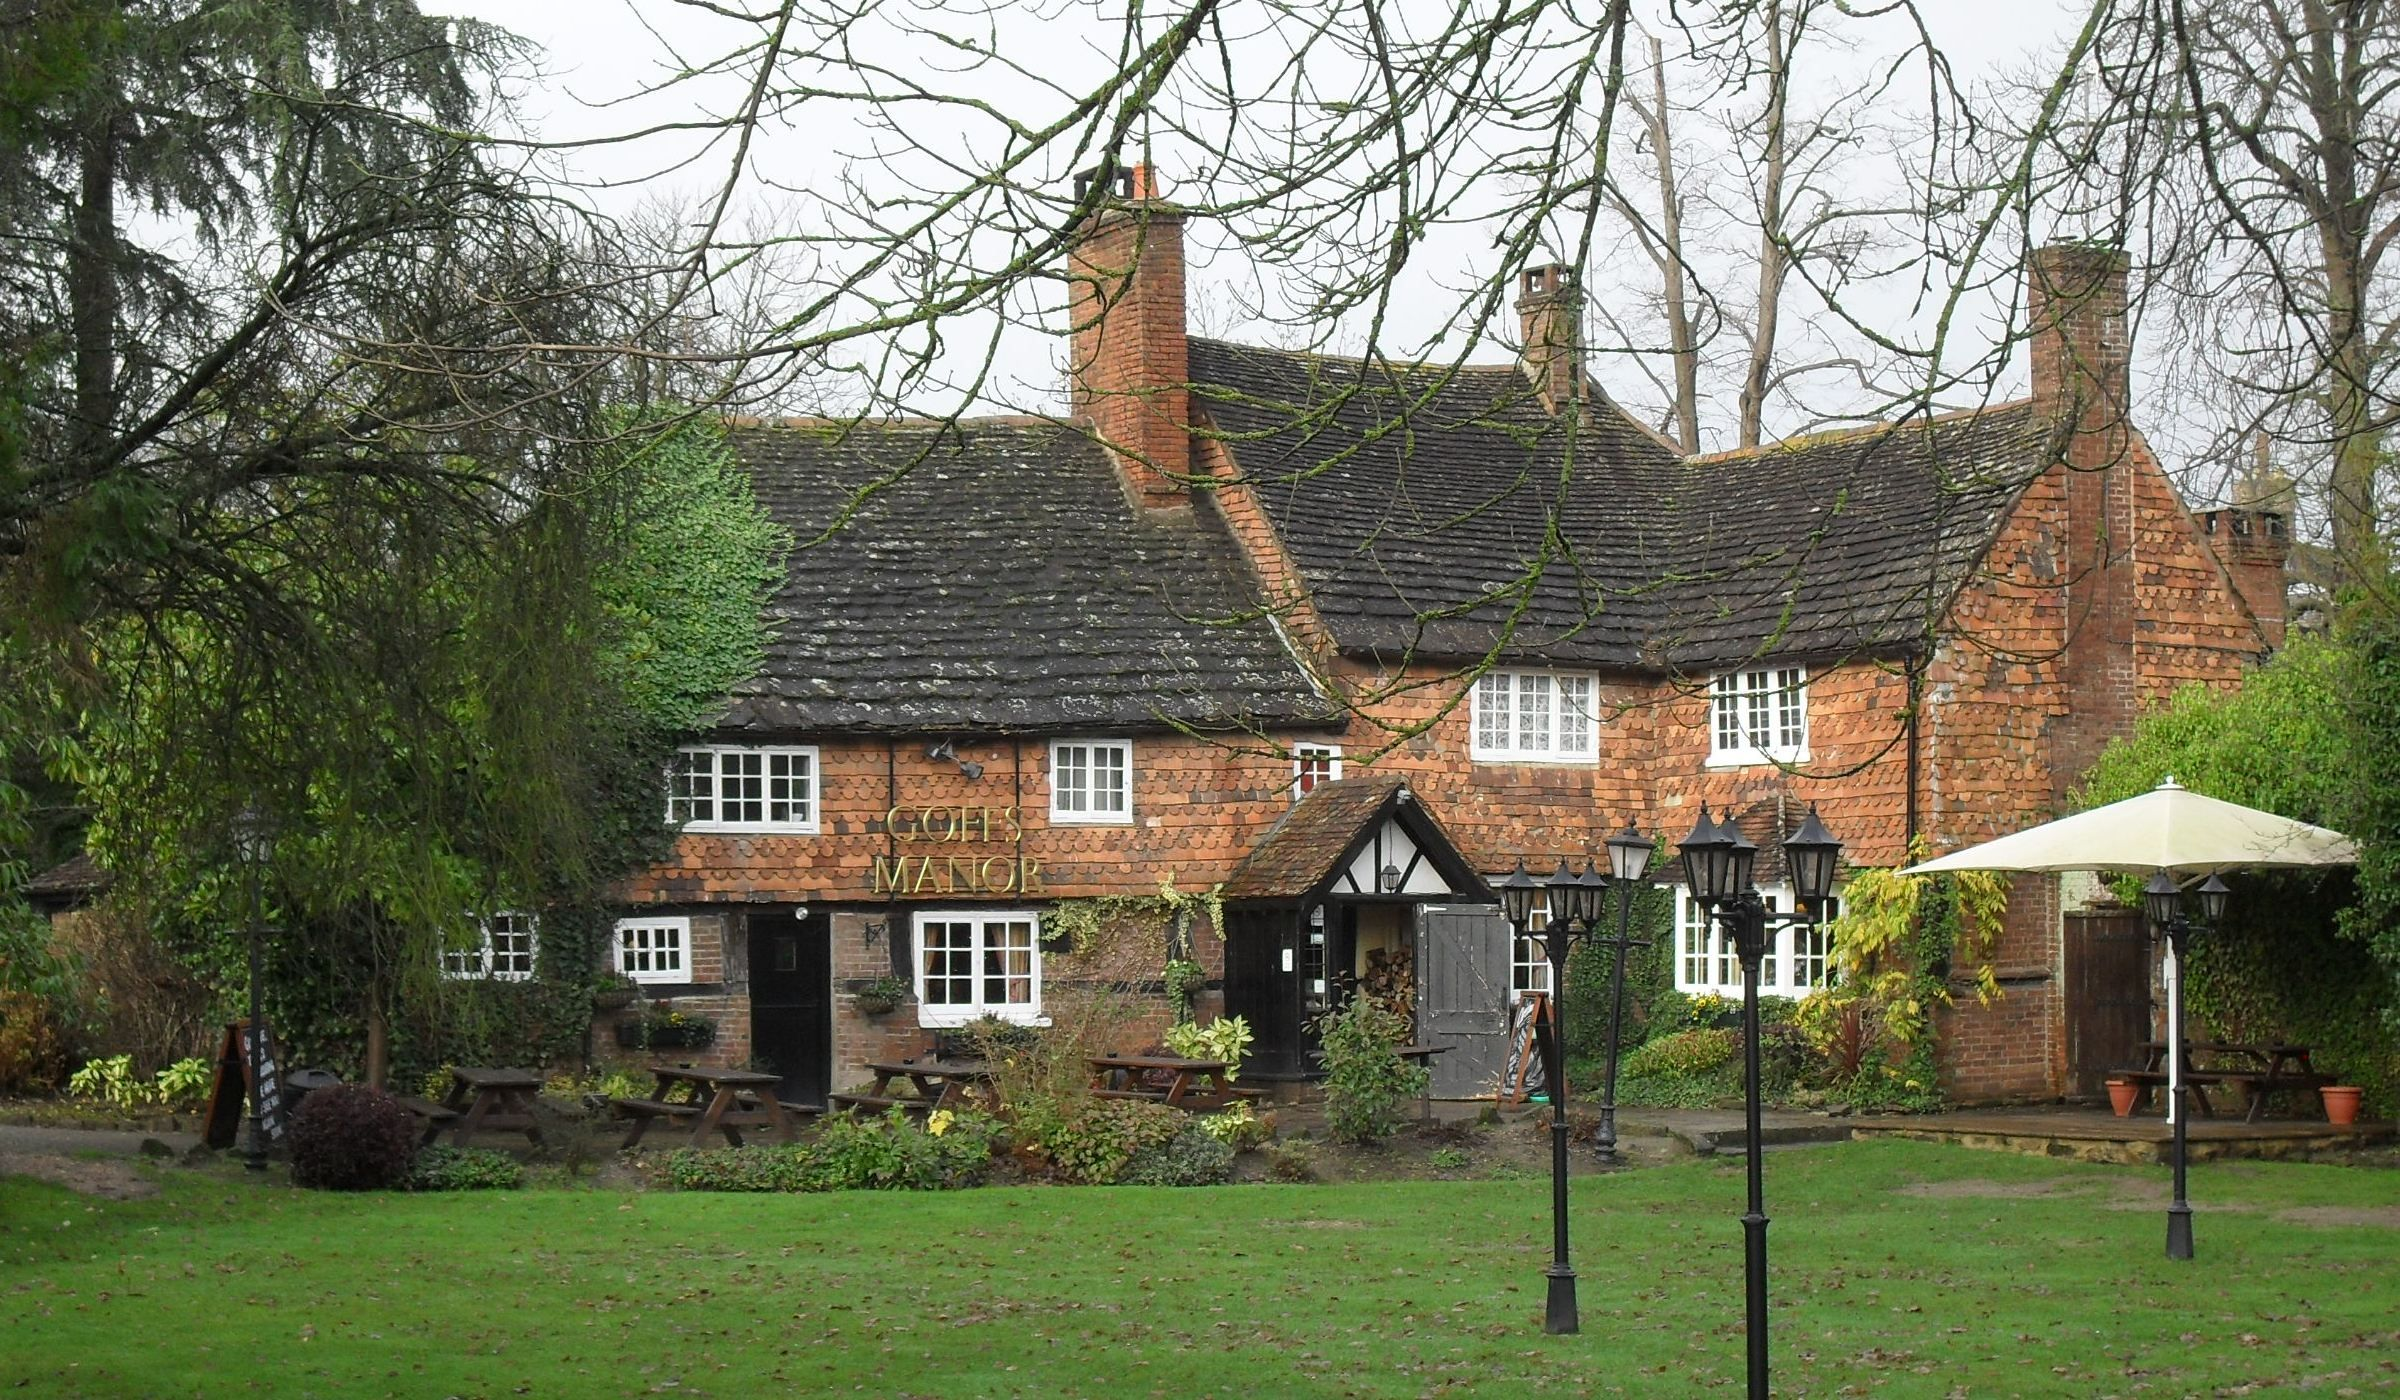 a2e9c4a4cfe18c2ceea07bad4aa638c3 - Pubs In West Sussex With Gardens